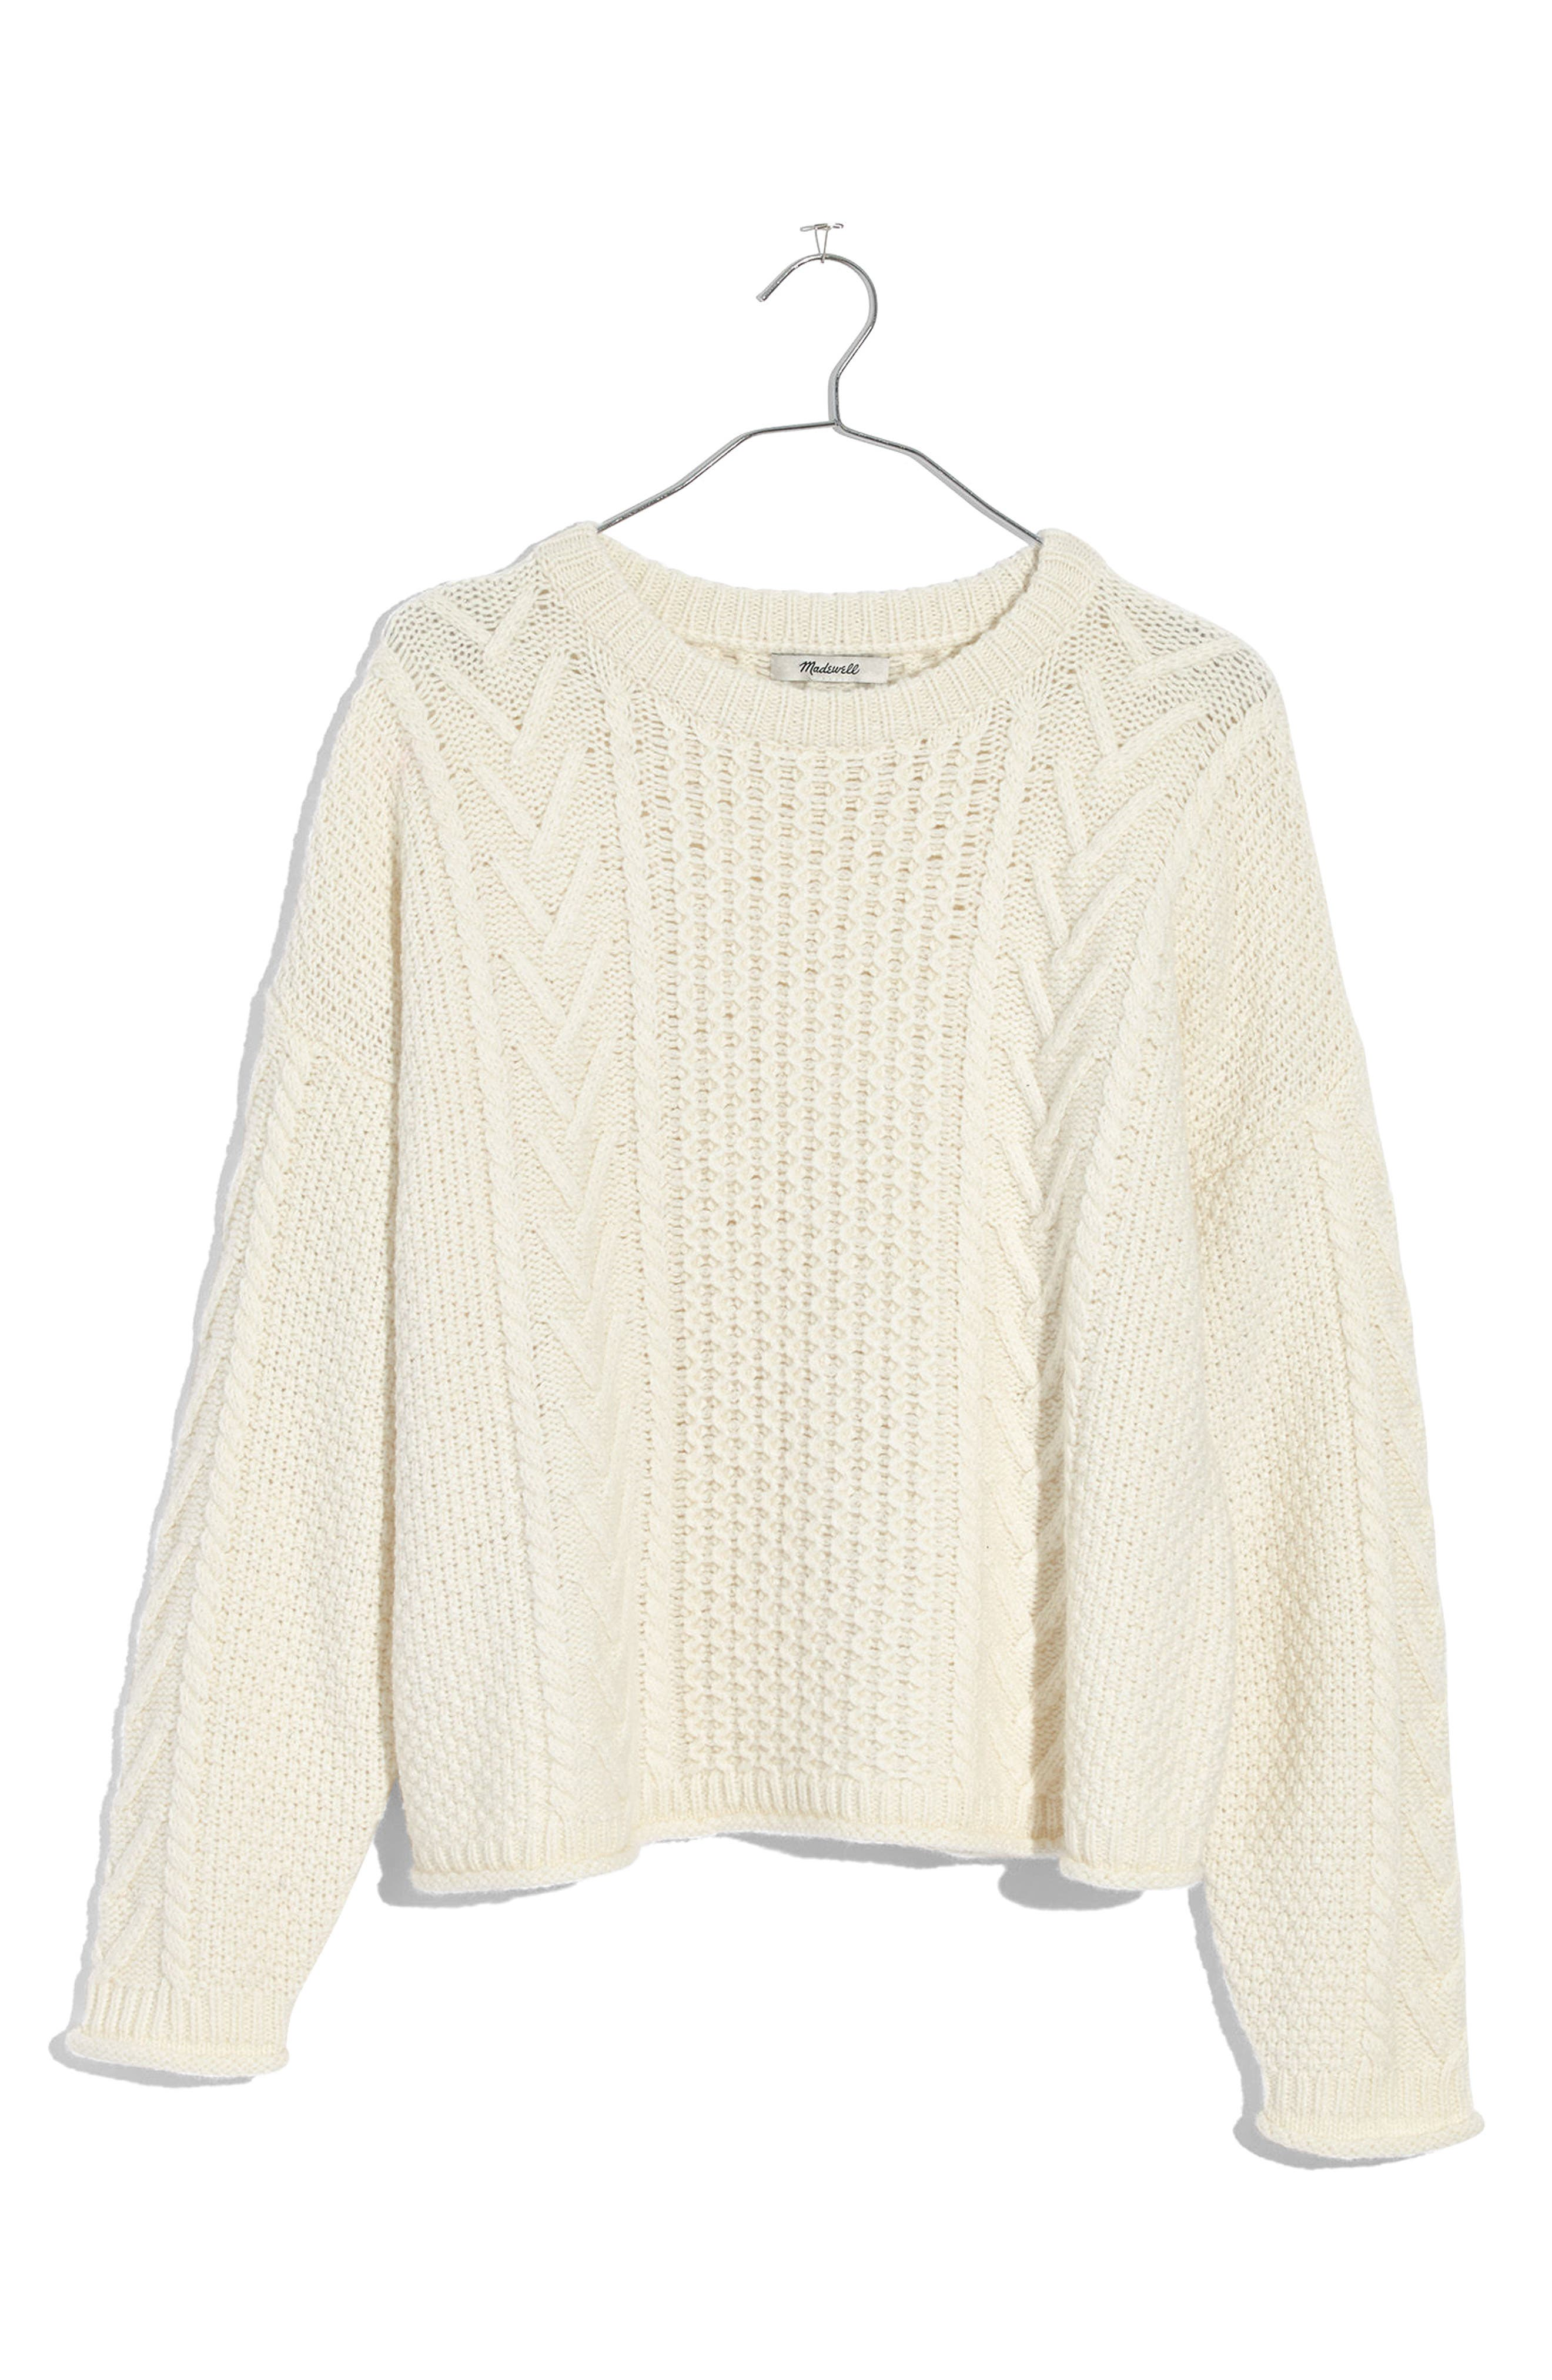 Madewell Cable Knit Pullover Sweater